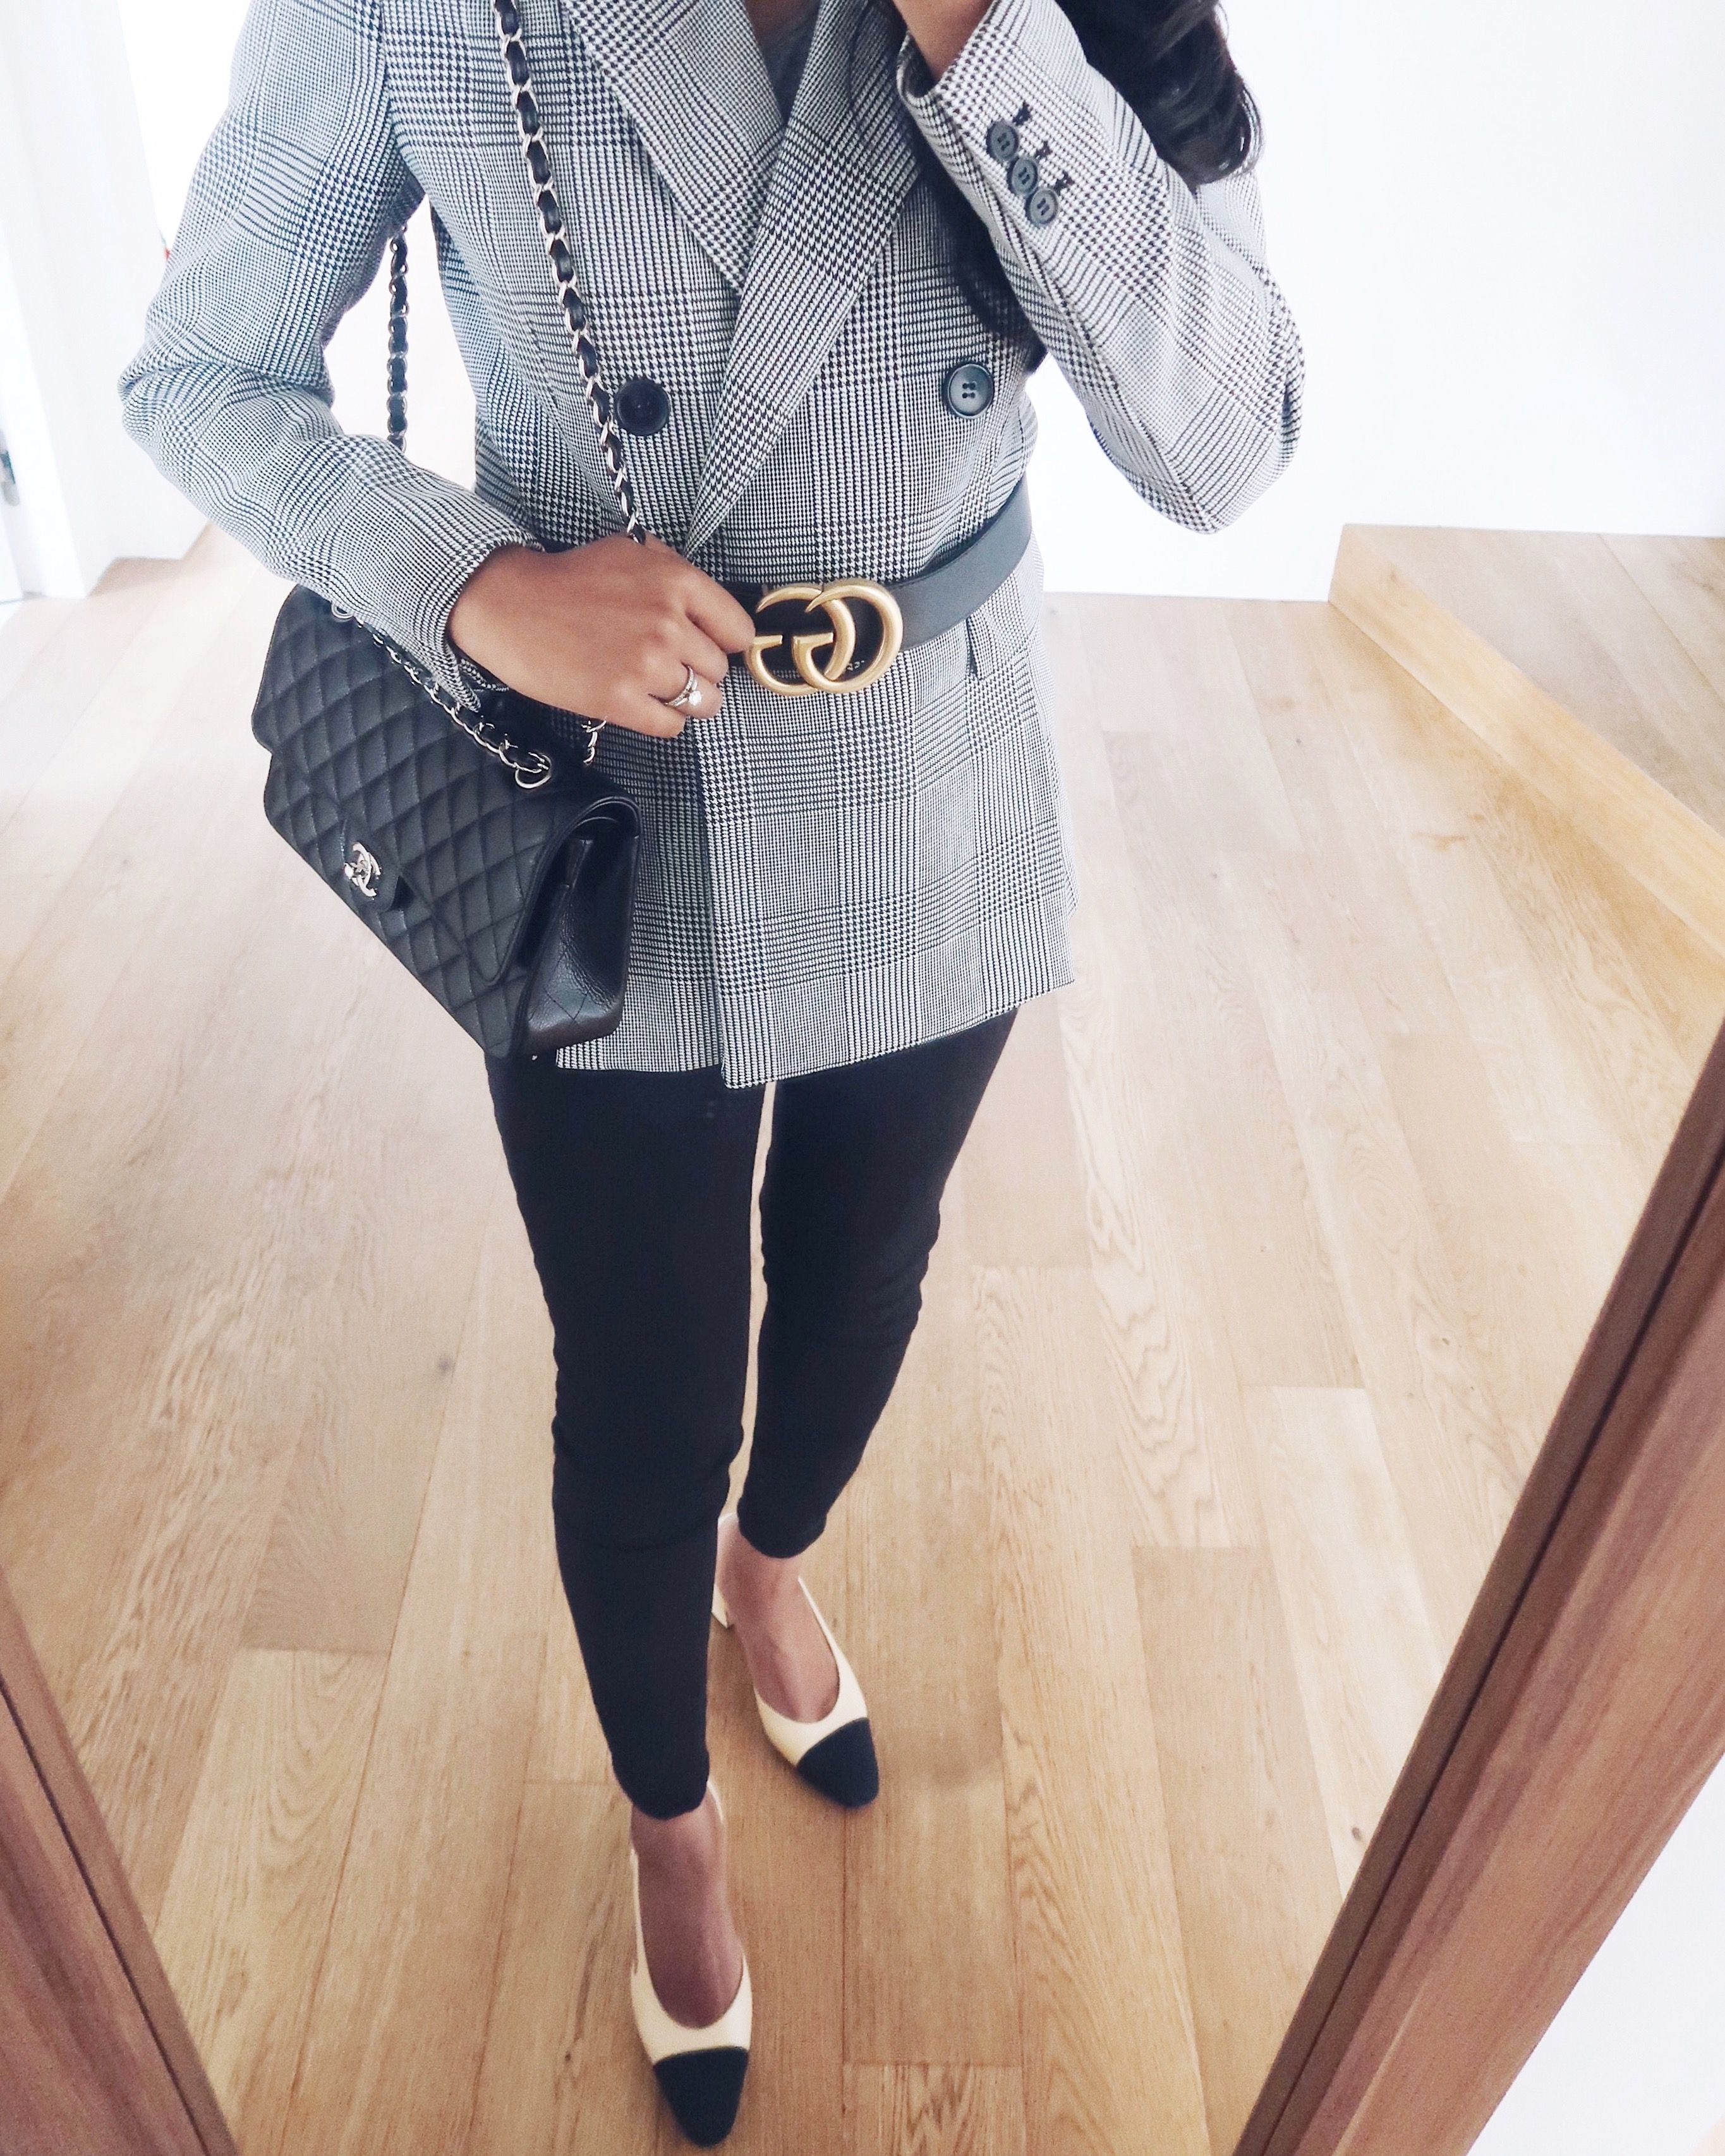 ee8734d48 Smart casual outfit with Gucci GG Belt and Chanel.   INSPIRE ...